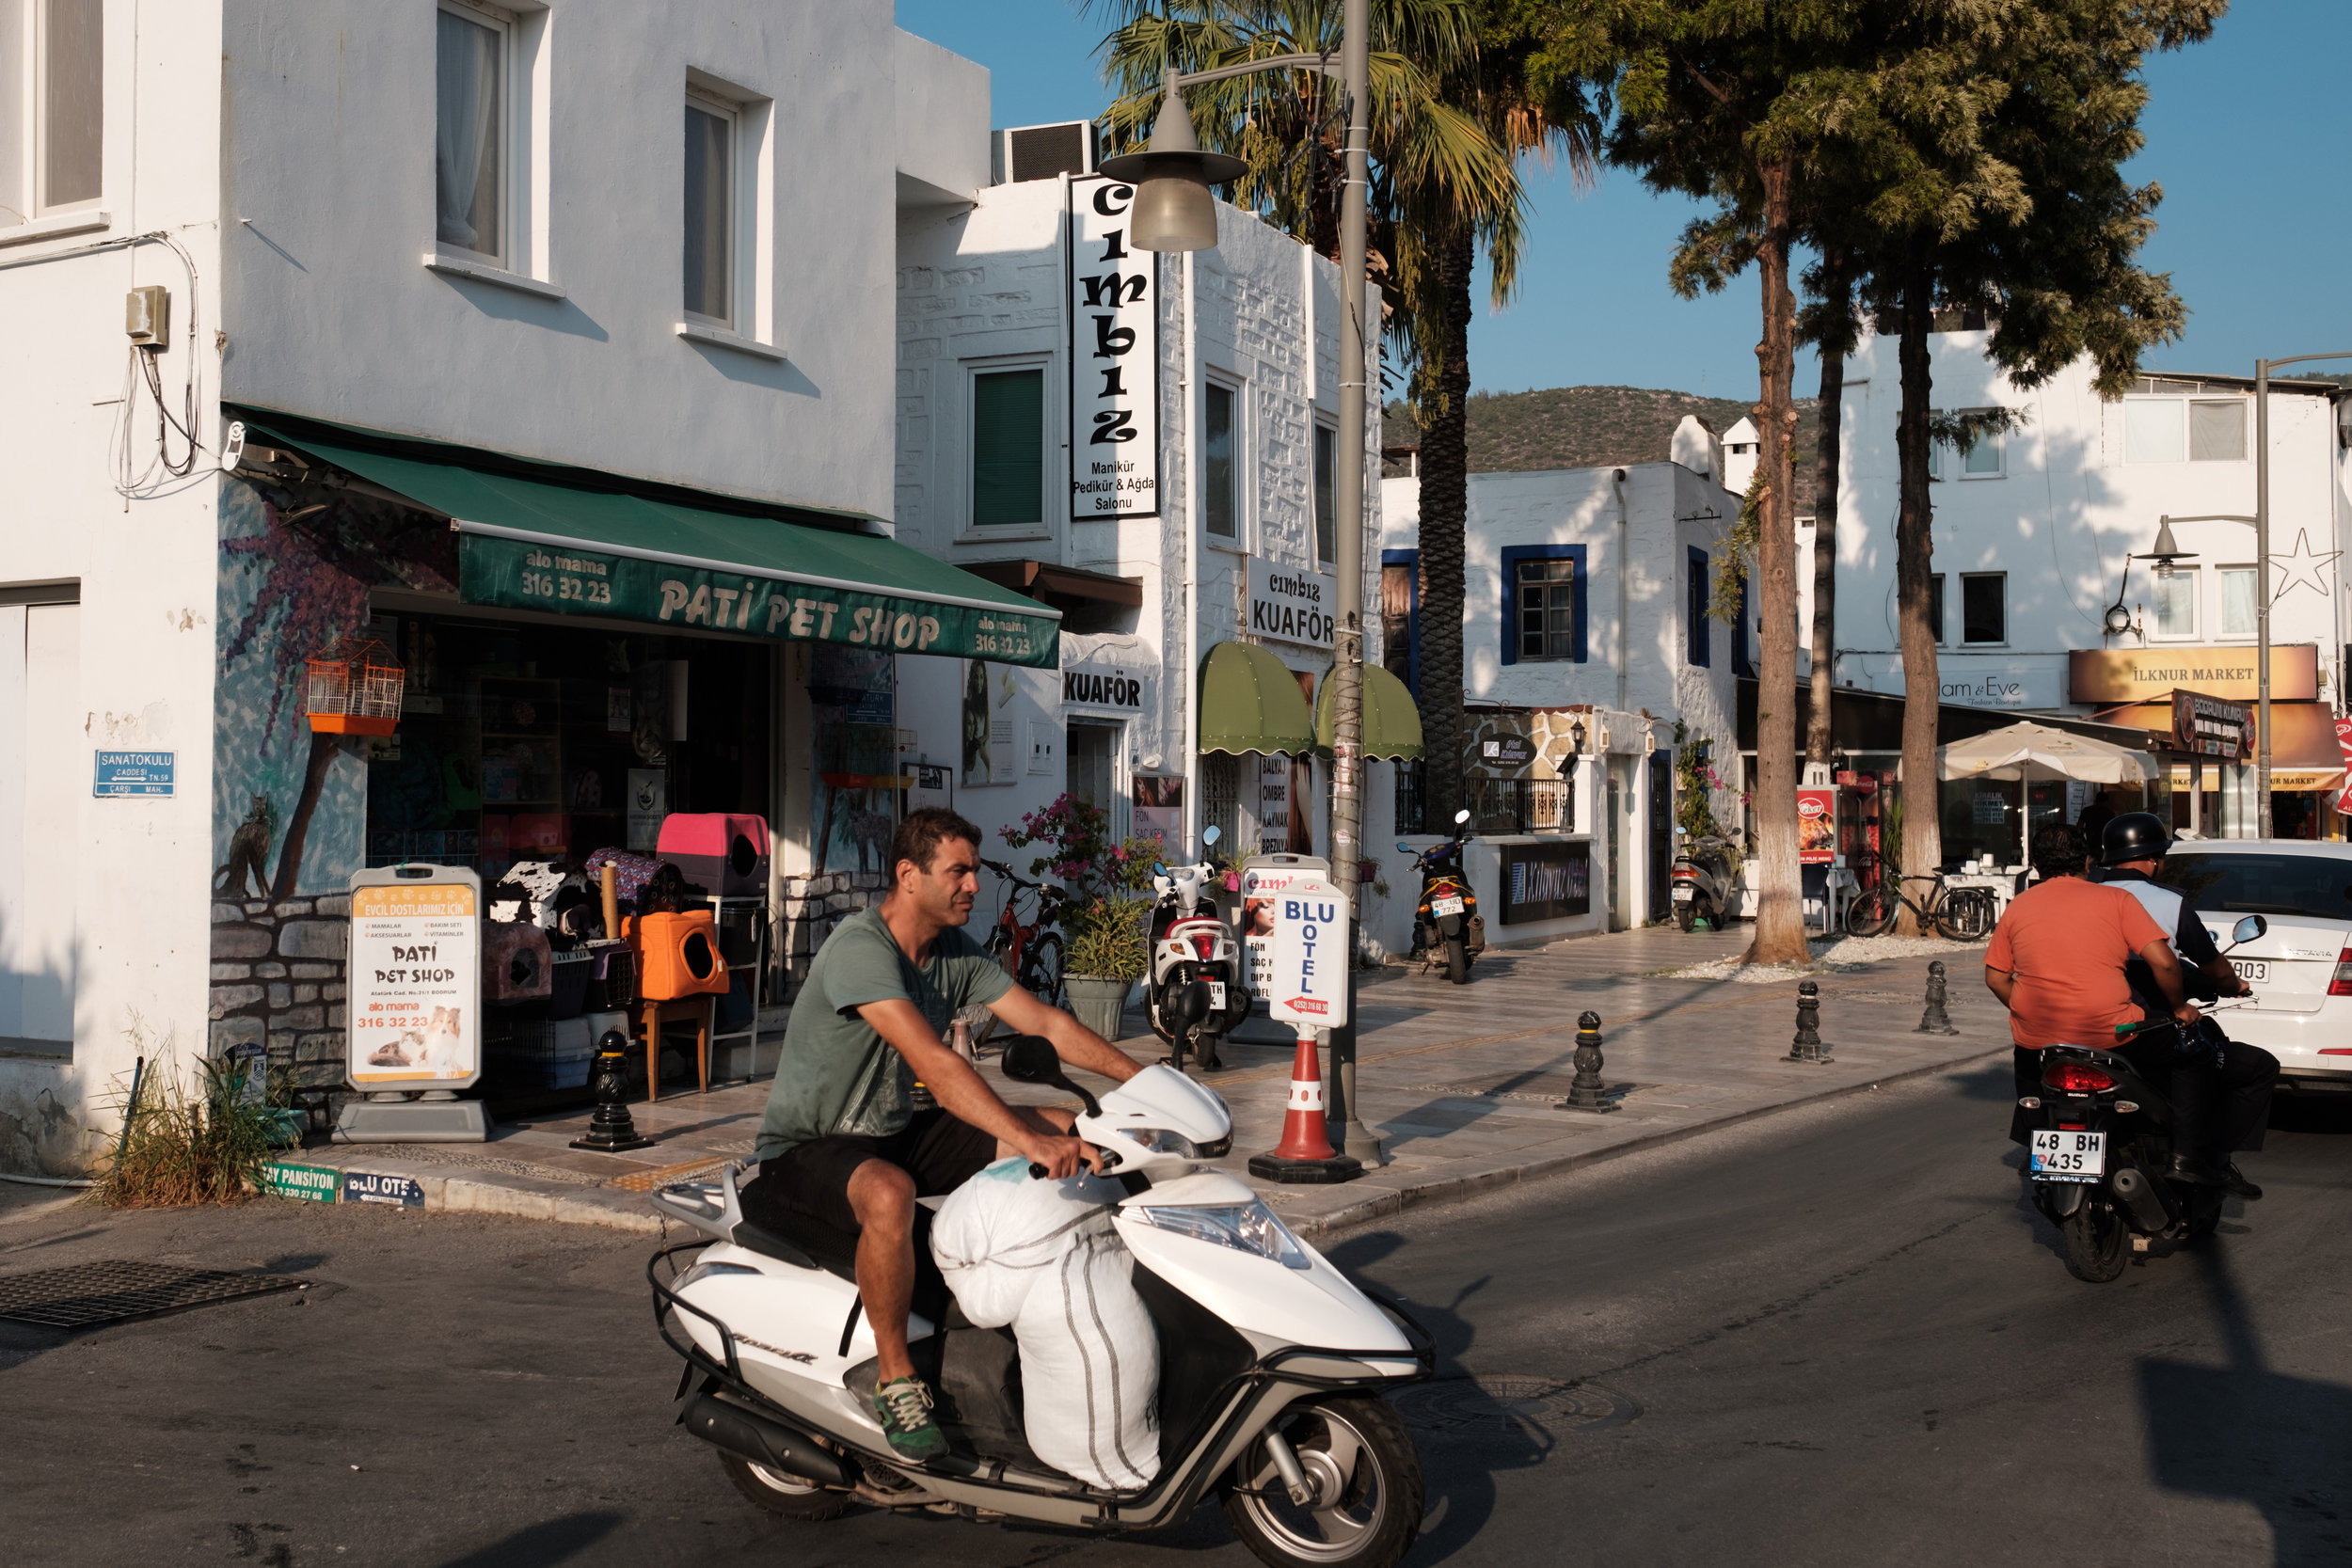 A scooter in the streets of Bodum Turkey